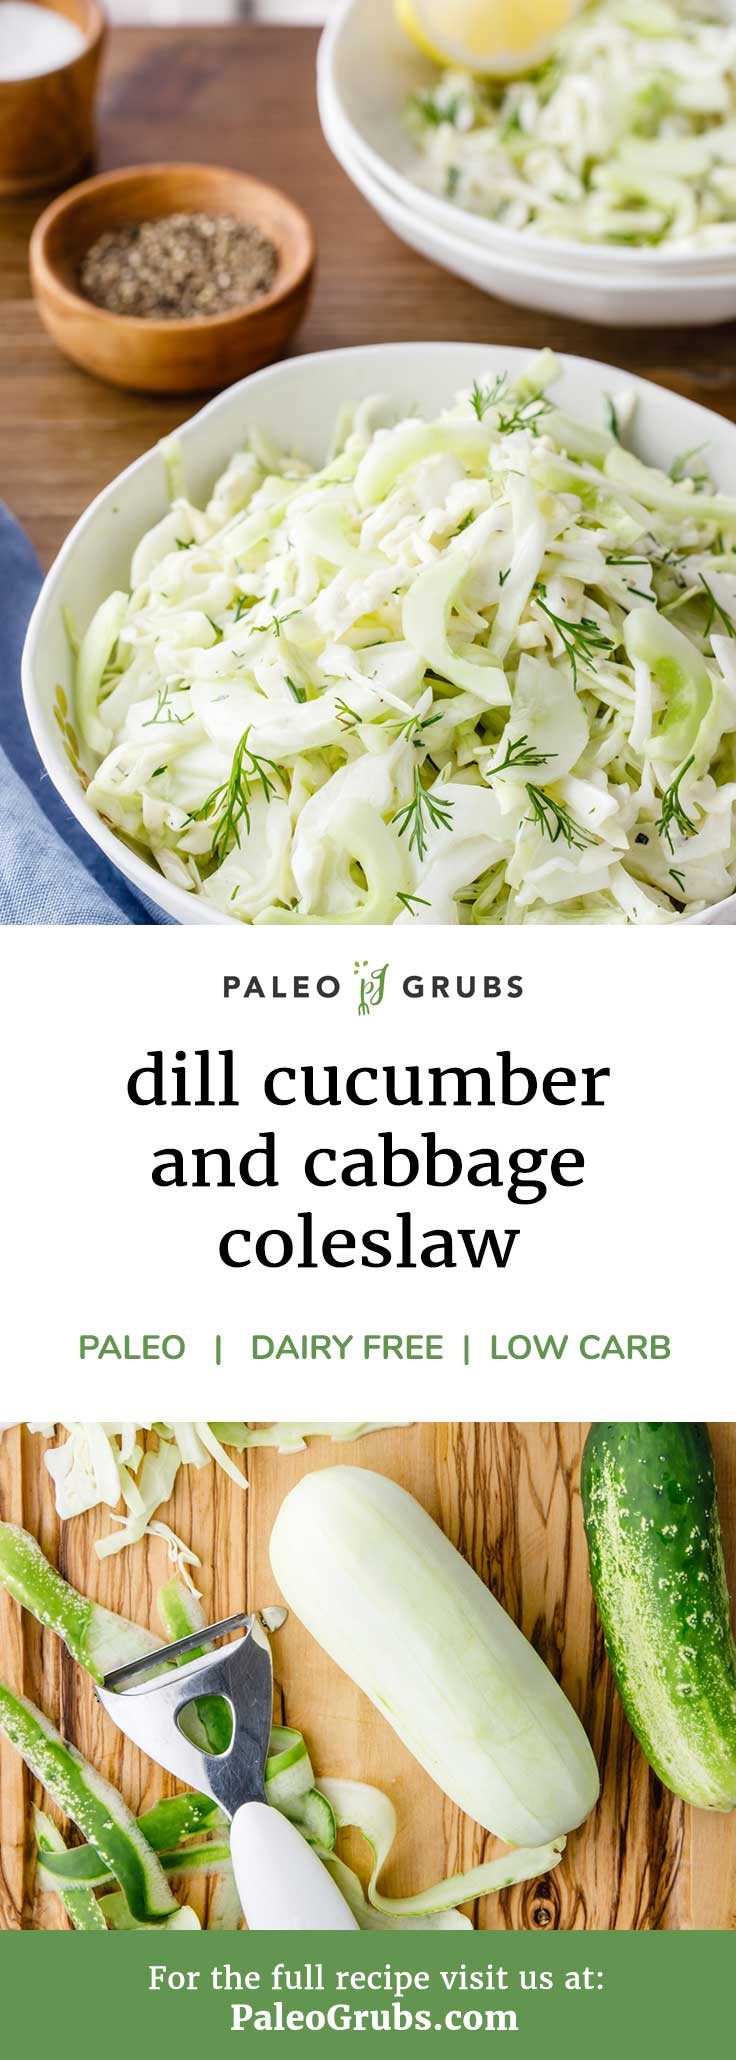 This cucumber and cabbage paleo cole slaw is creamy, crisp and yummy! One of my families paleo staples.